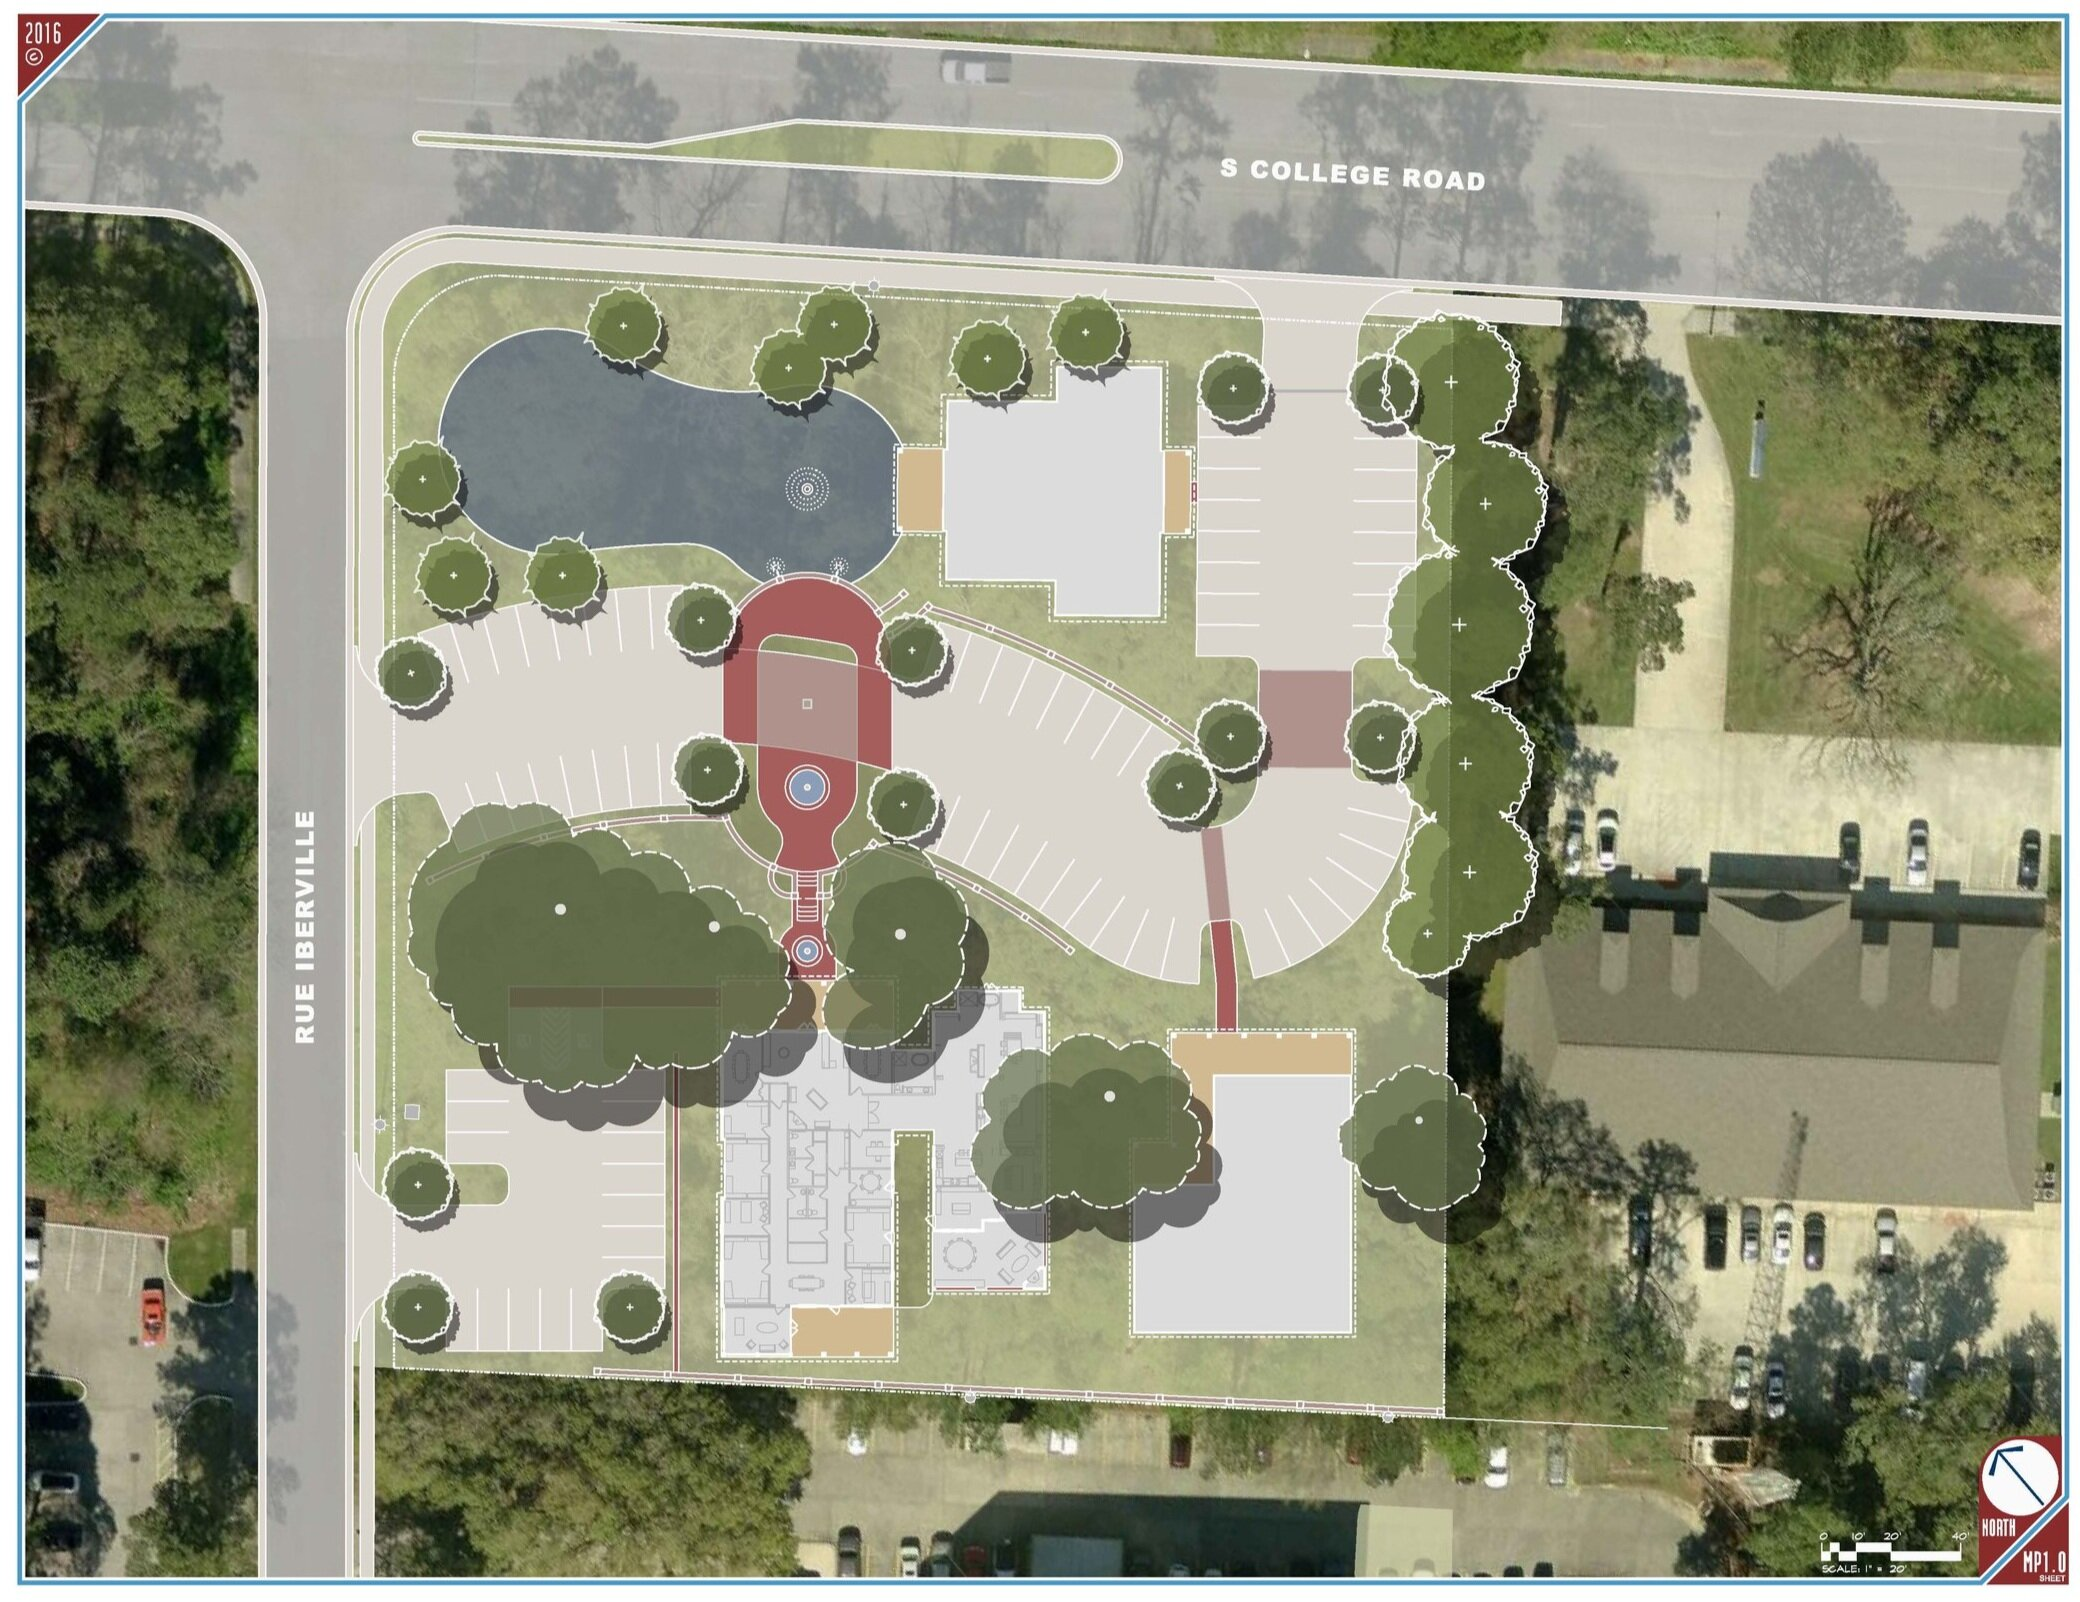 This is the current master plan for the Iberville Grove project site, prepared by LAND Architecture. This project is currently under construction by Manuel Commercial and will house the new home office and design studio of our sister company, Manuel Builders.